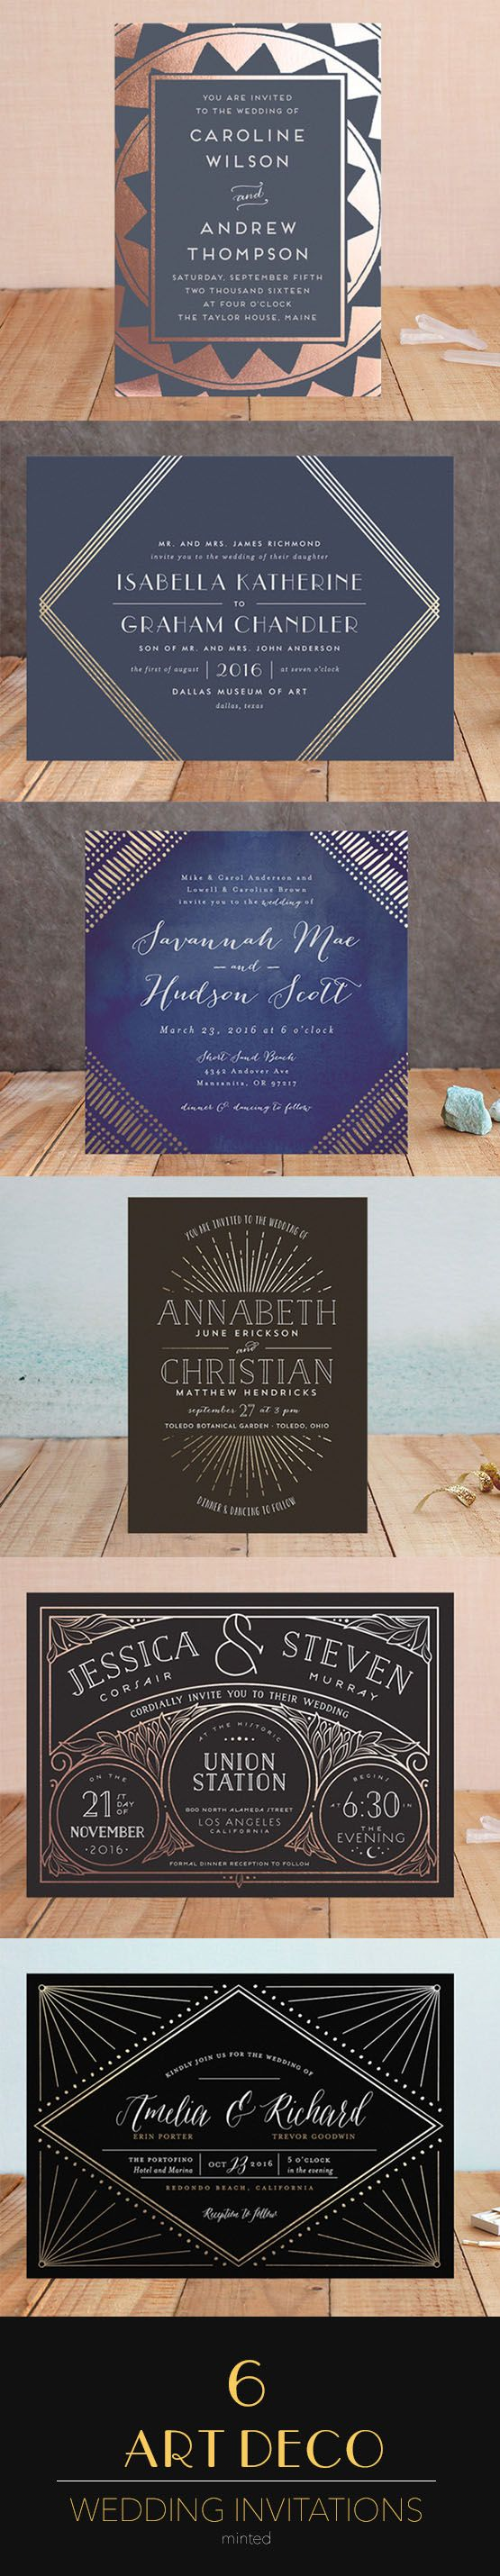 Art Deco Wedding Invitations inspired by The Great Gatsby.